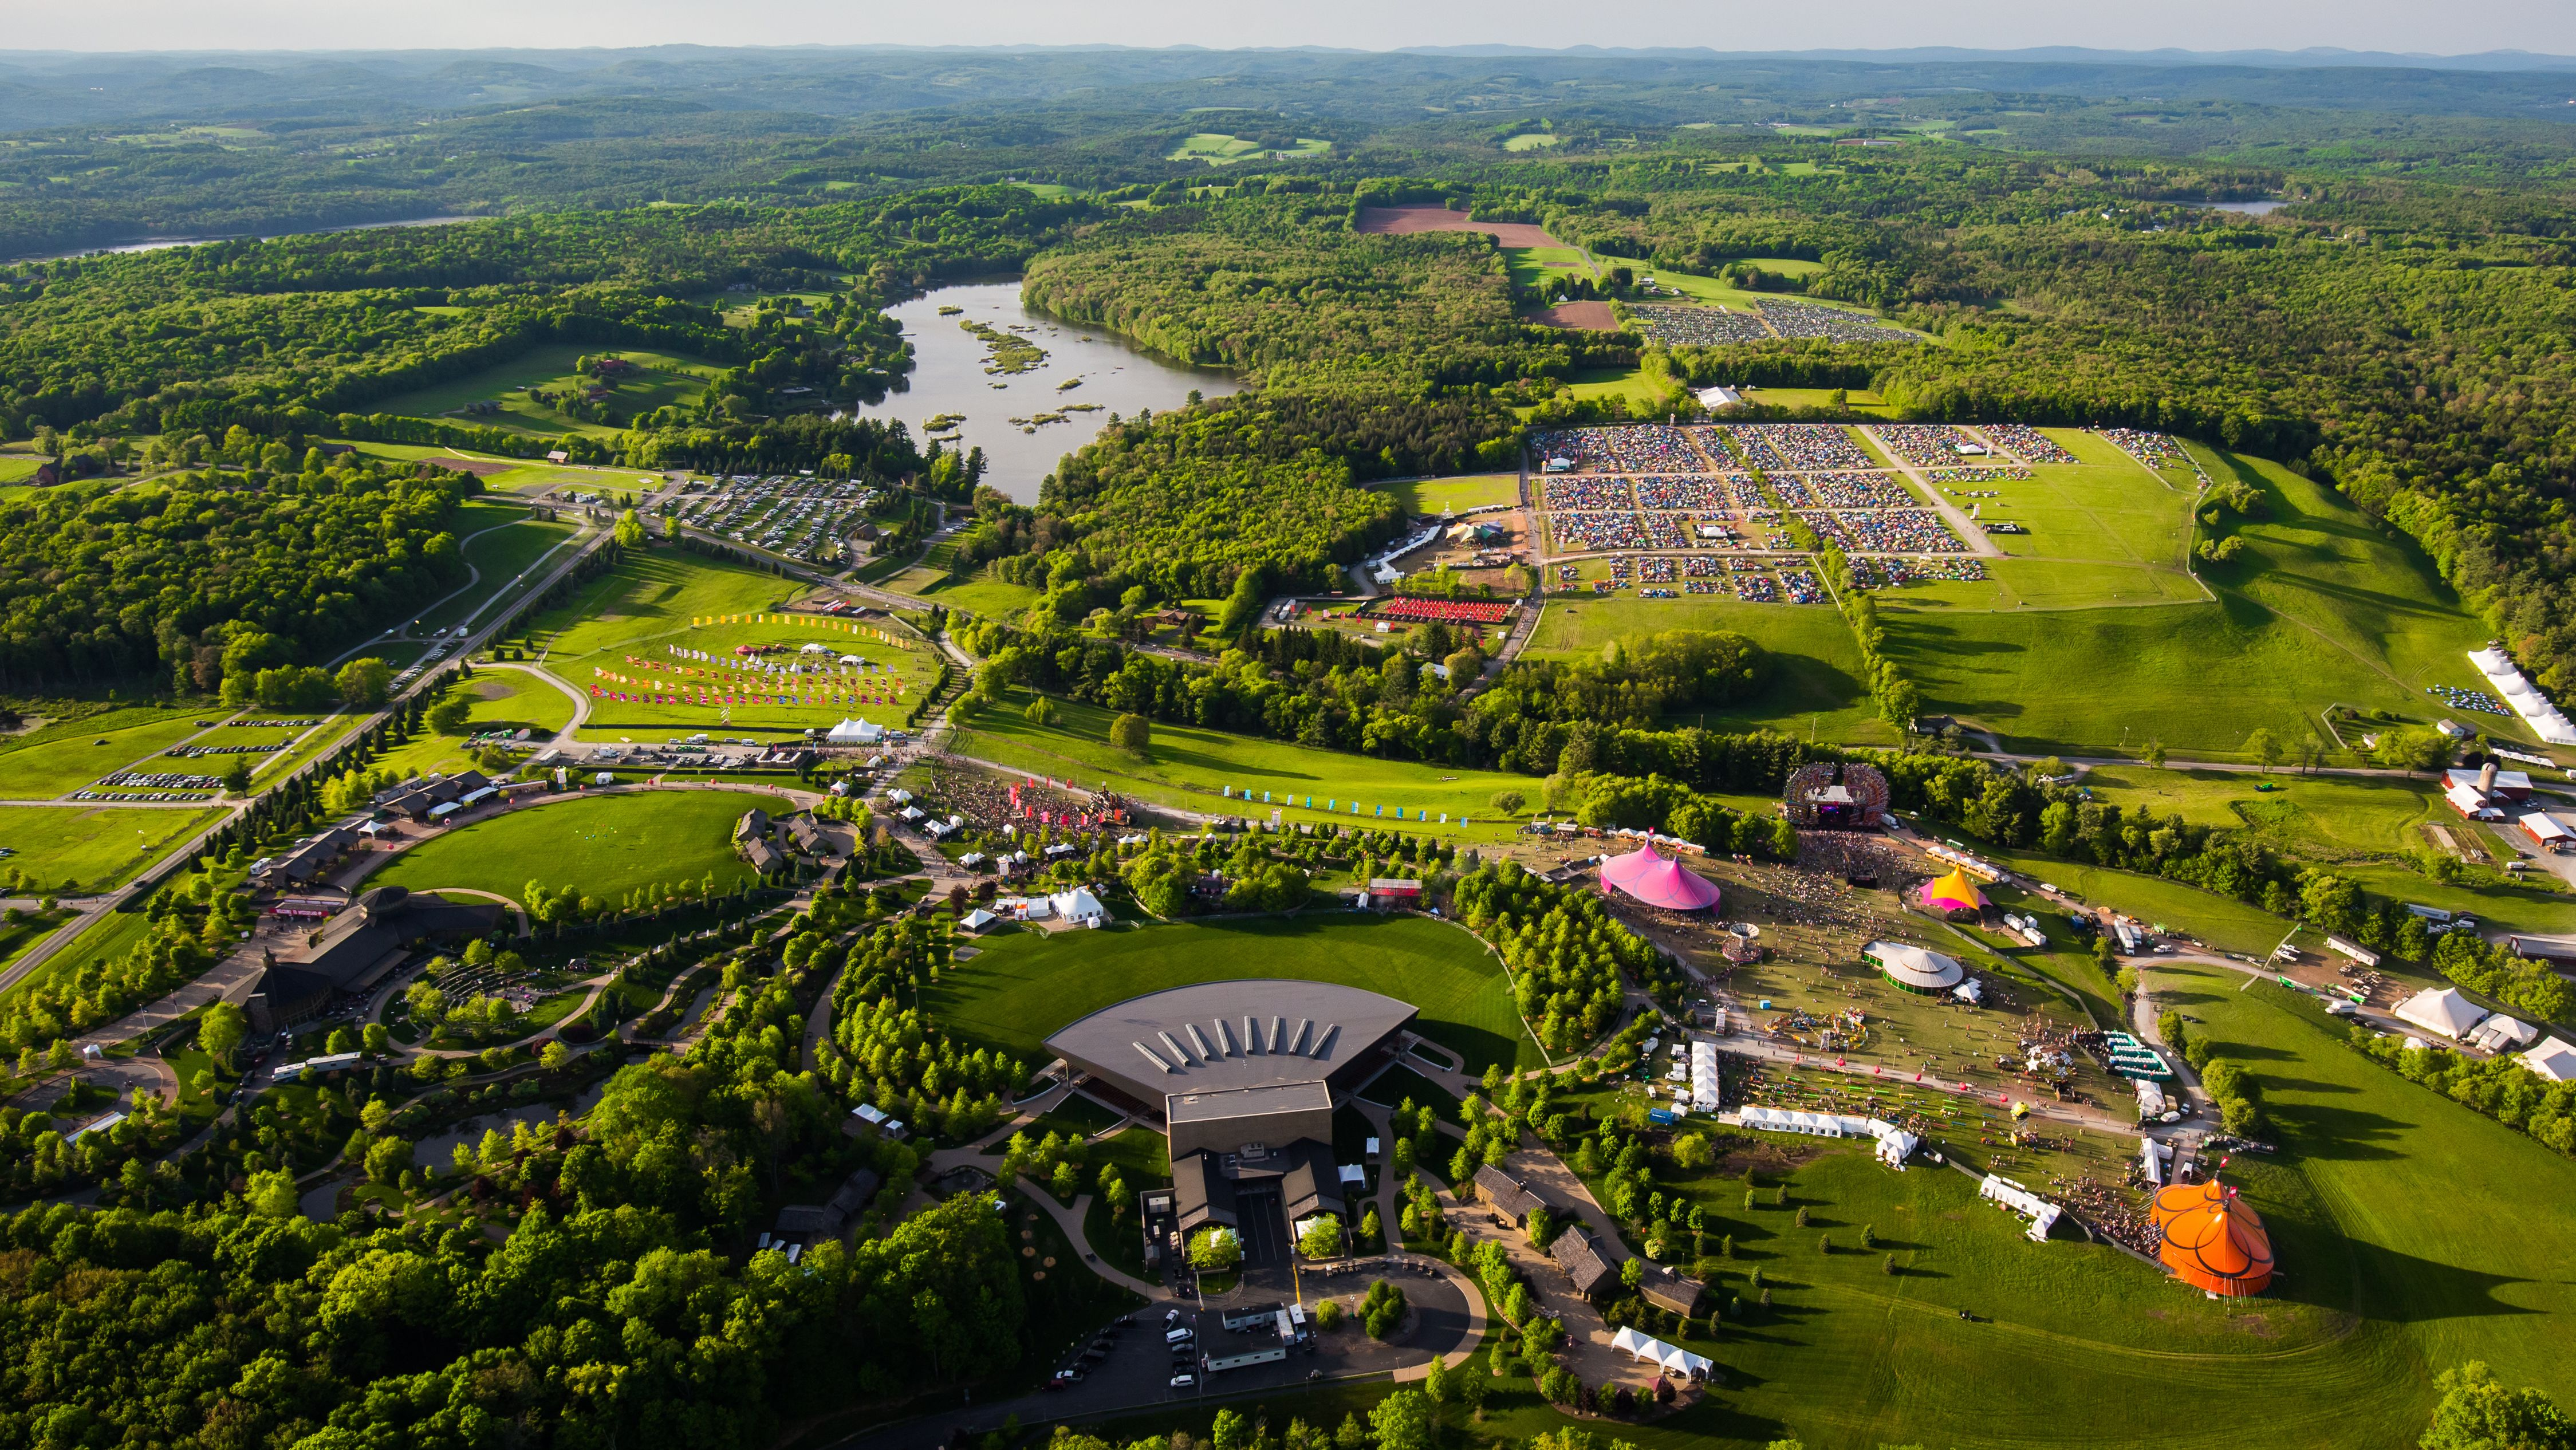 Celebrate Woodstock's 50th Anniversary With a 3-Day Music